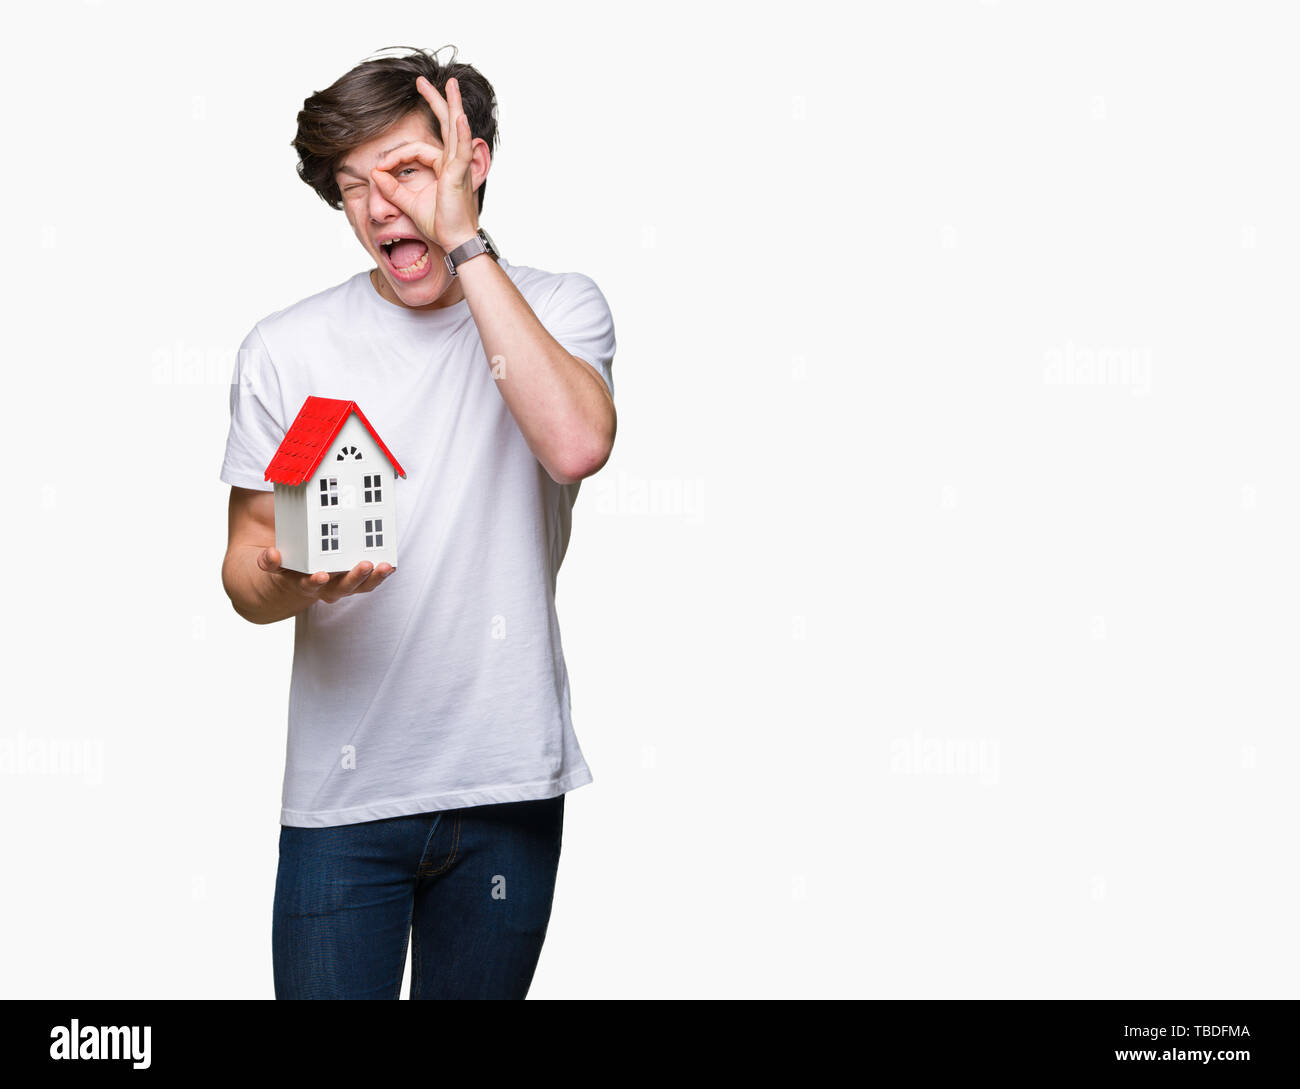 Young man holding house over isolated background with happy face smiling doing ok sign with hand on eye looking through fingers - Stock Image